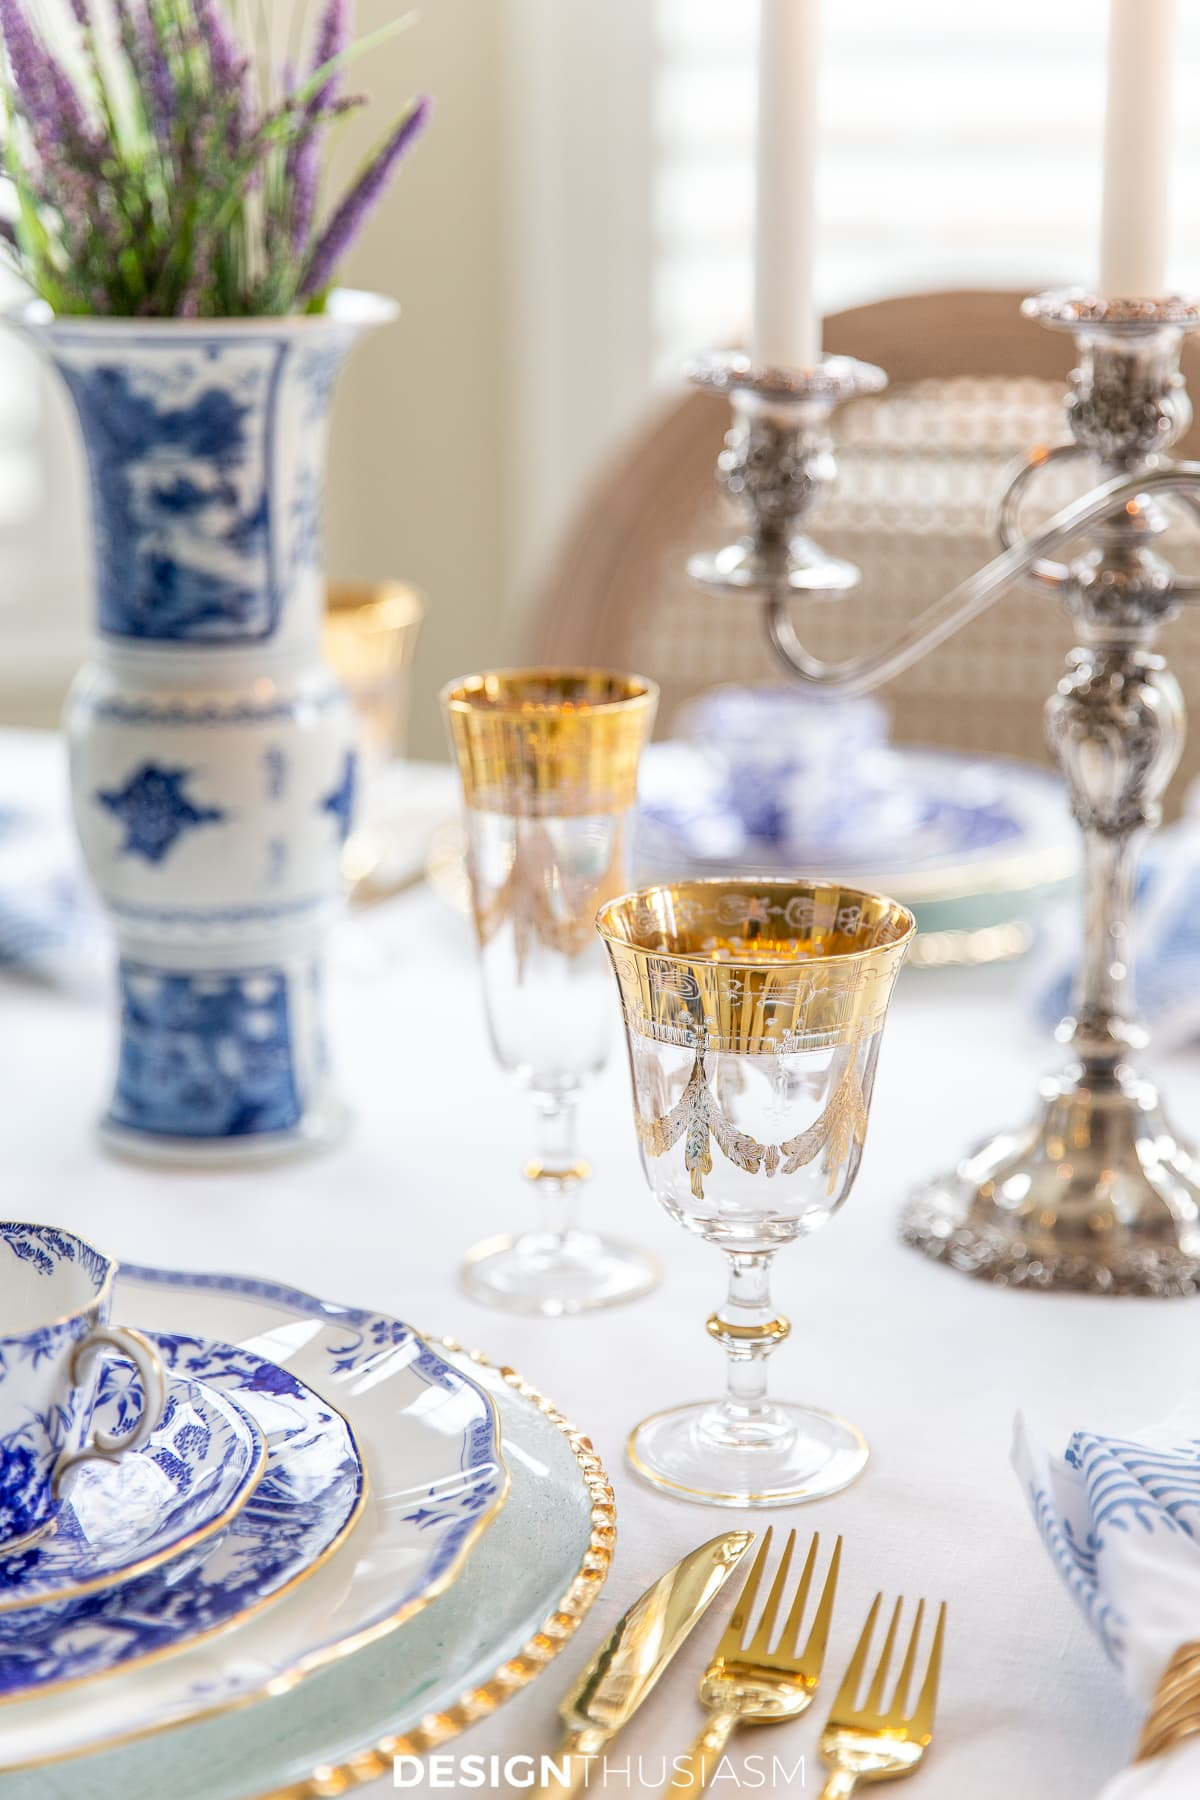 blue and white china table setting with gold rimmed goblets